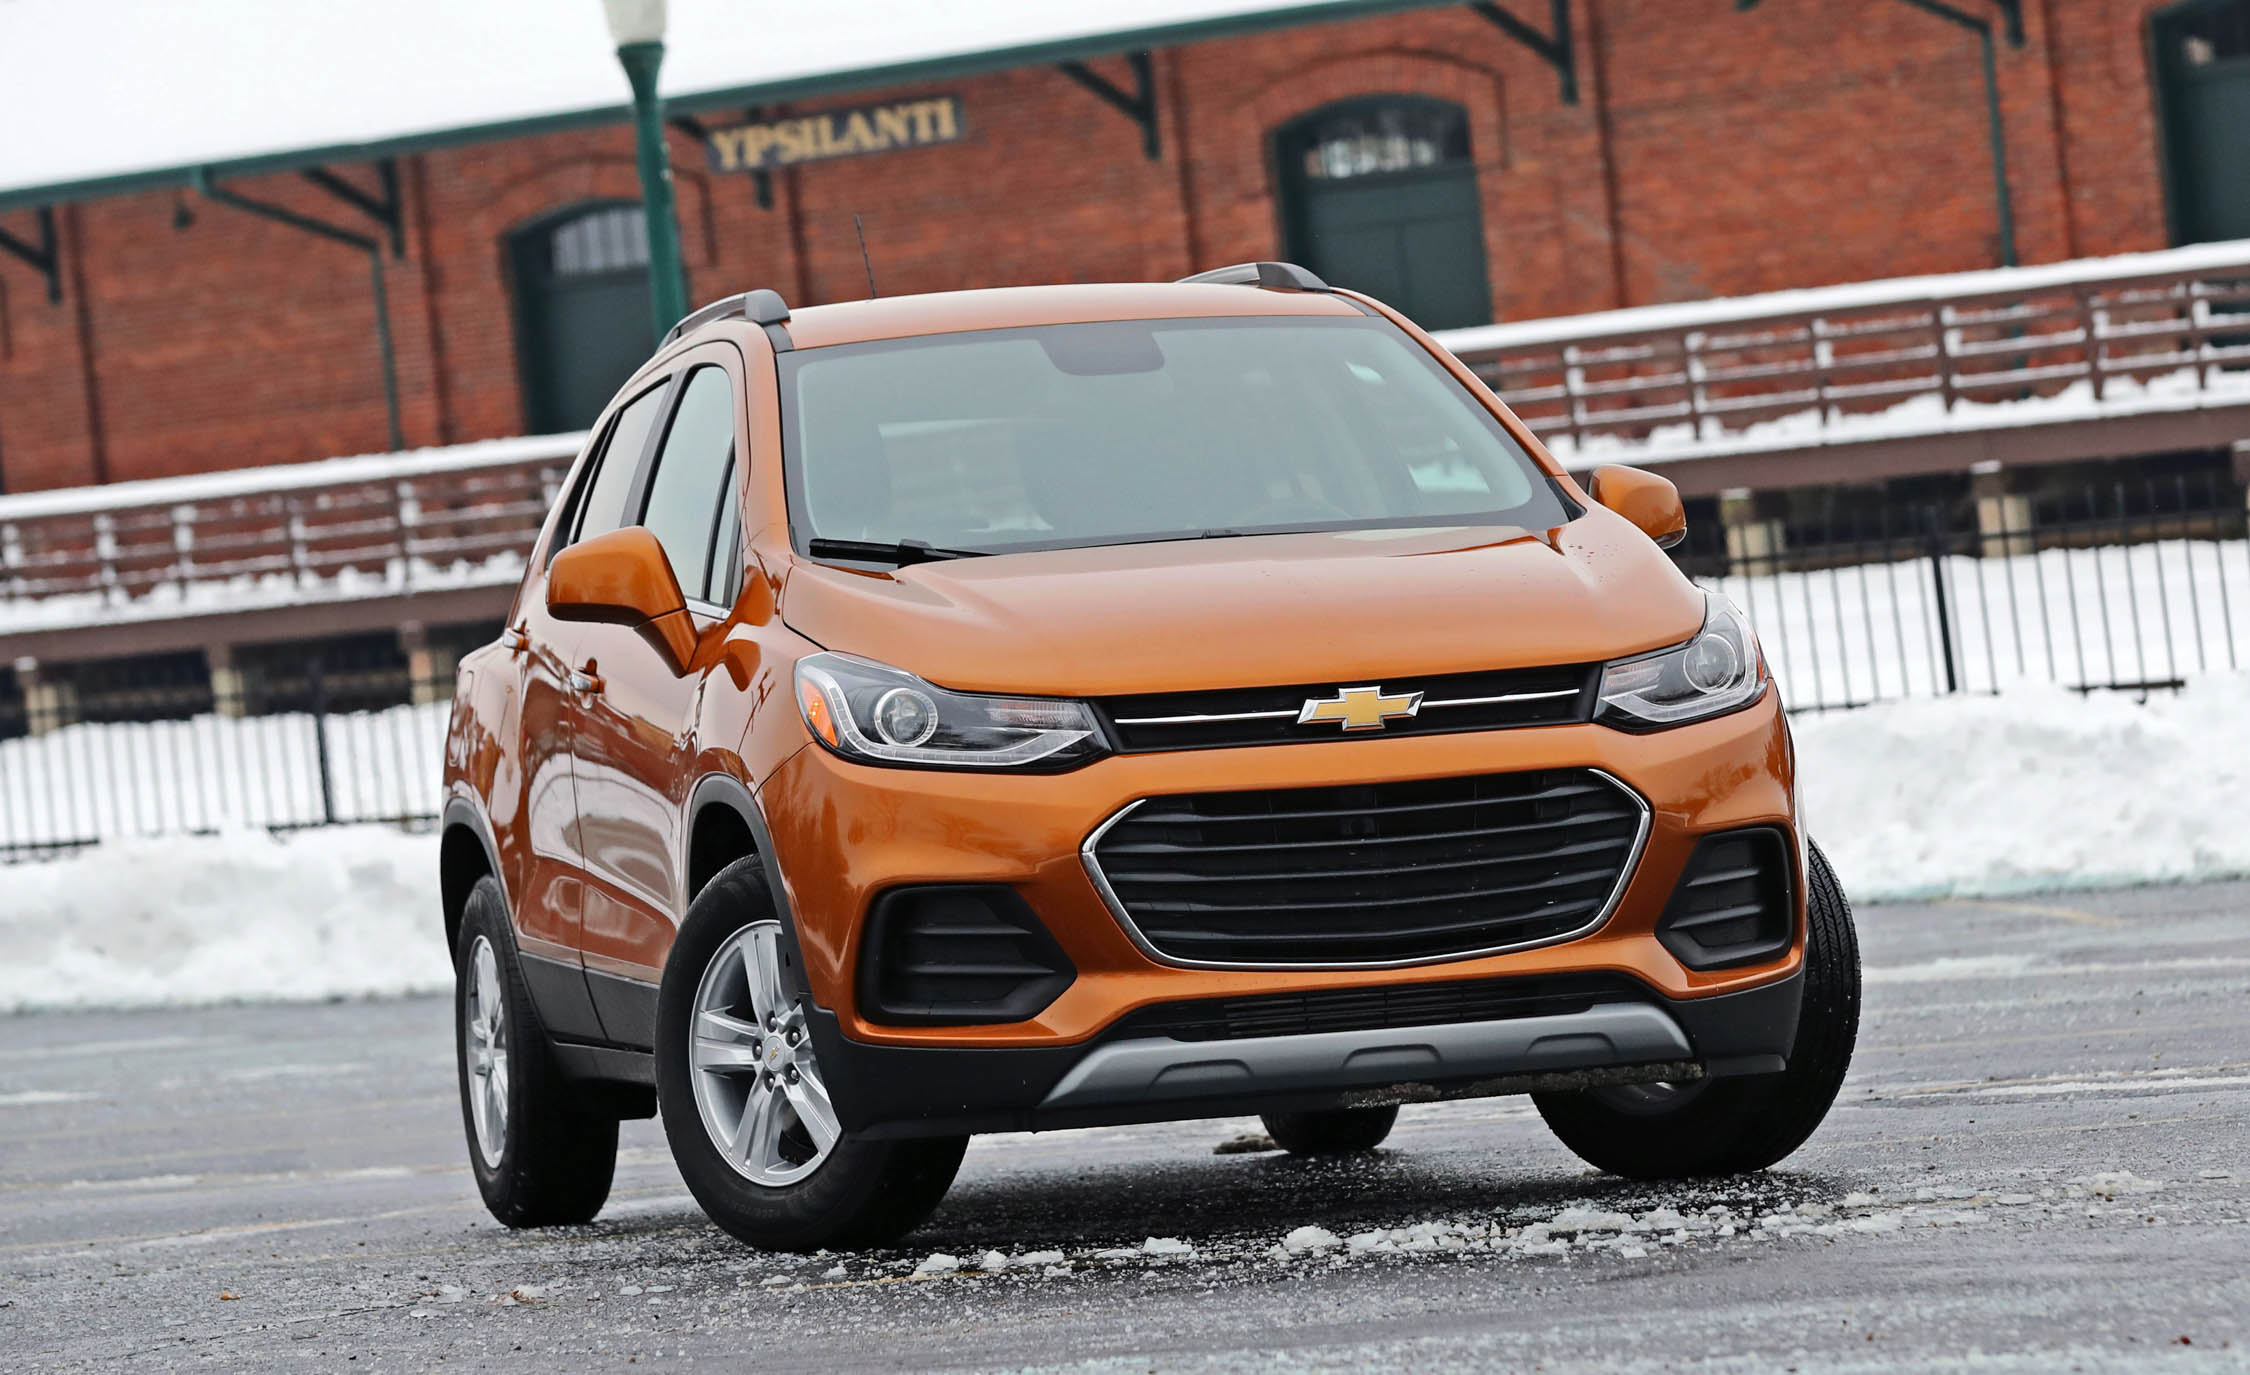 2017 Chevrolet Trax Exterior Front (View 47 of 47)